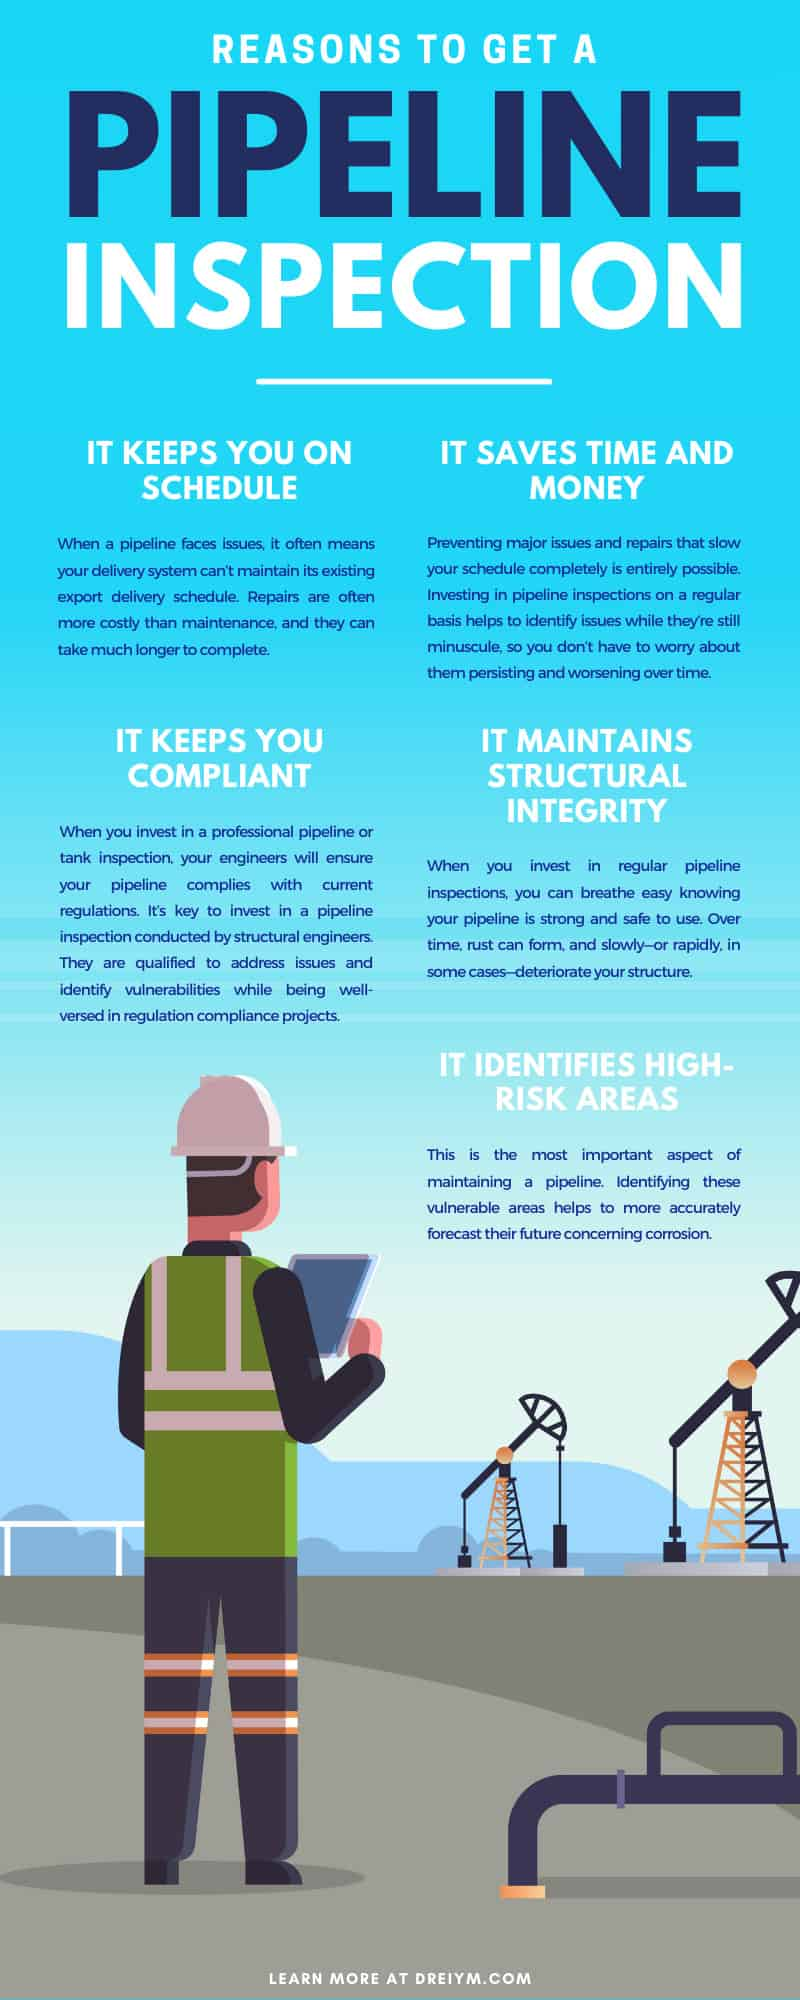 Reasons To Get a Pipeline Inspection